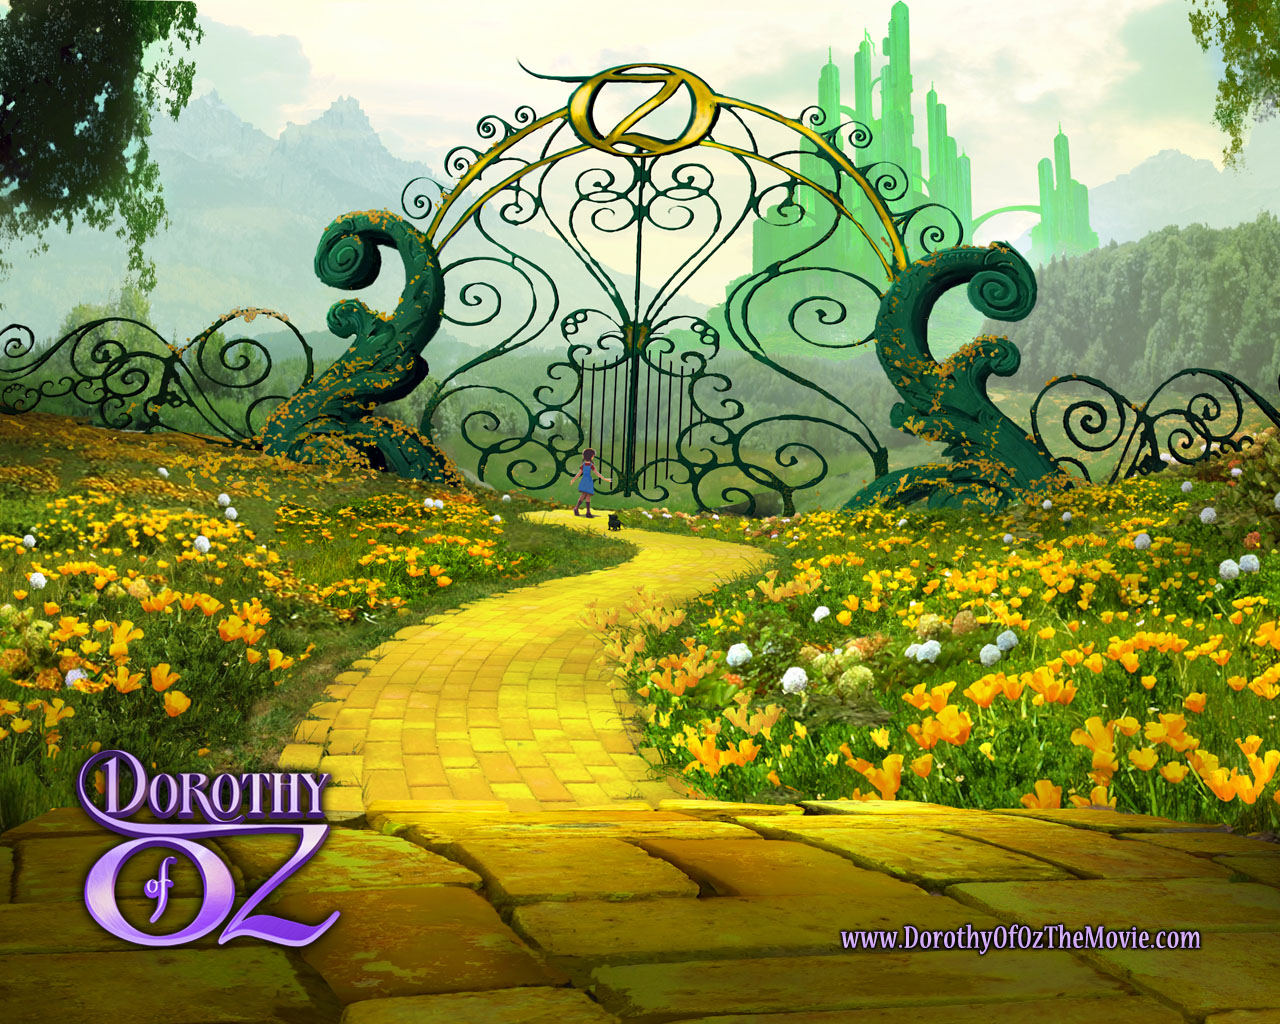 http://st-im.kinopoisk.ru/im/wallpaper/1/5/3/kinopoisk.ru-Legends-of-Oz_3A-Dorothy_27s-Return-1533899--w--1280.jpg